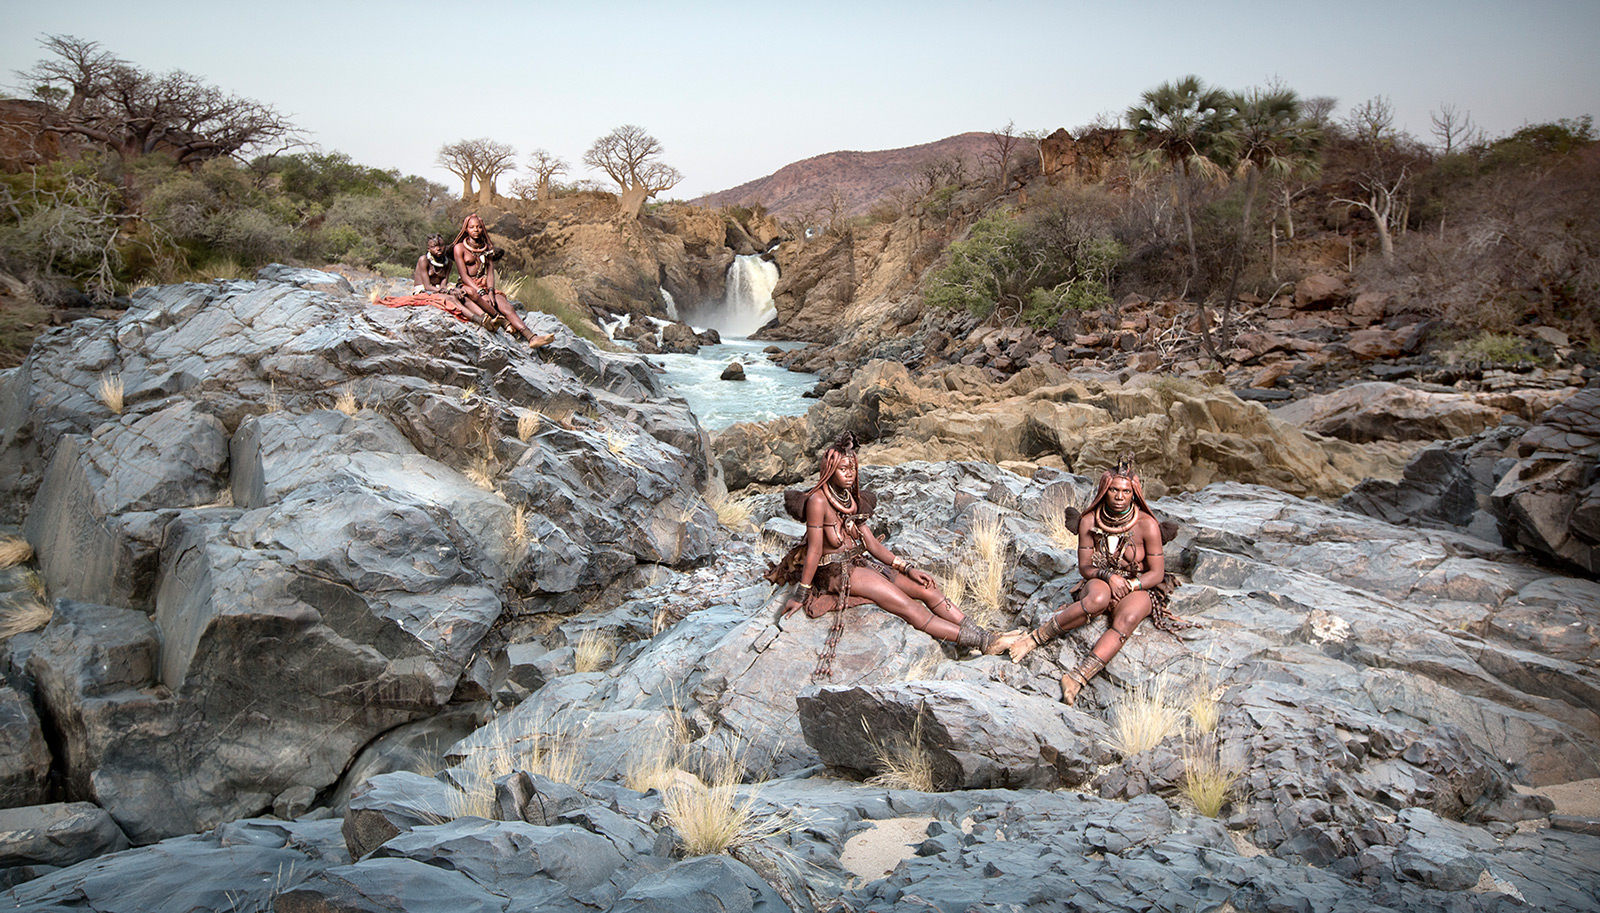 Himba women at Epupa Falls, northern Namibia ©Ben McRae